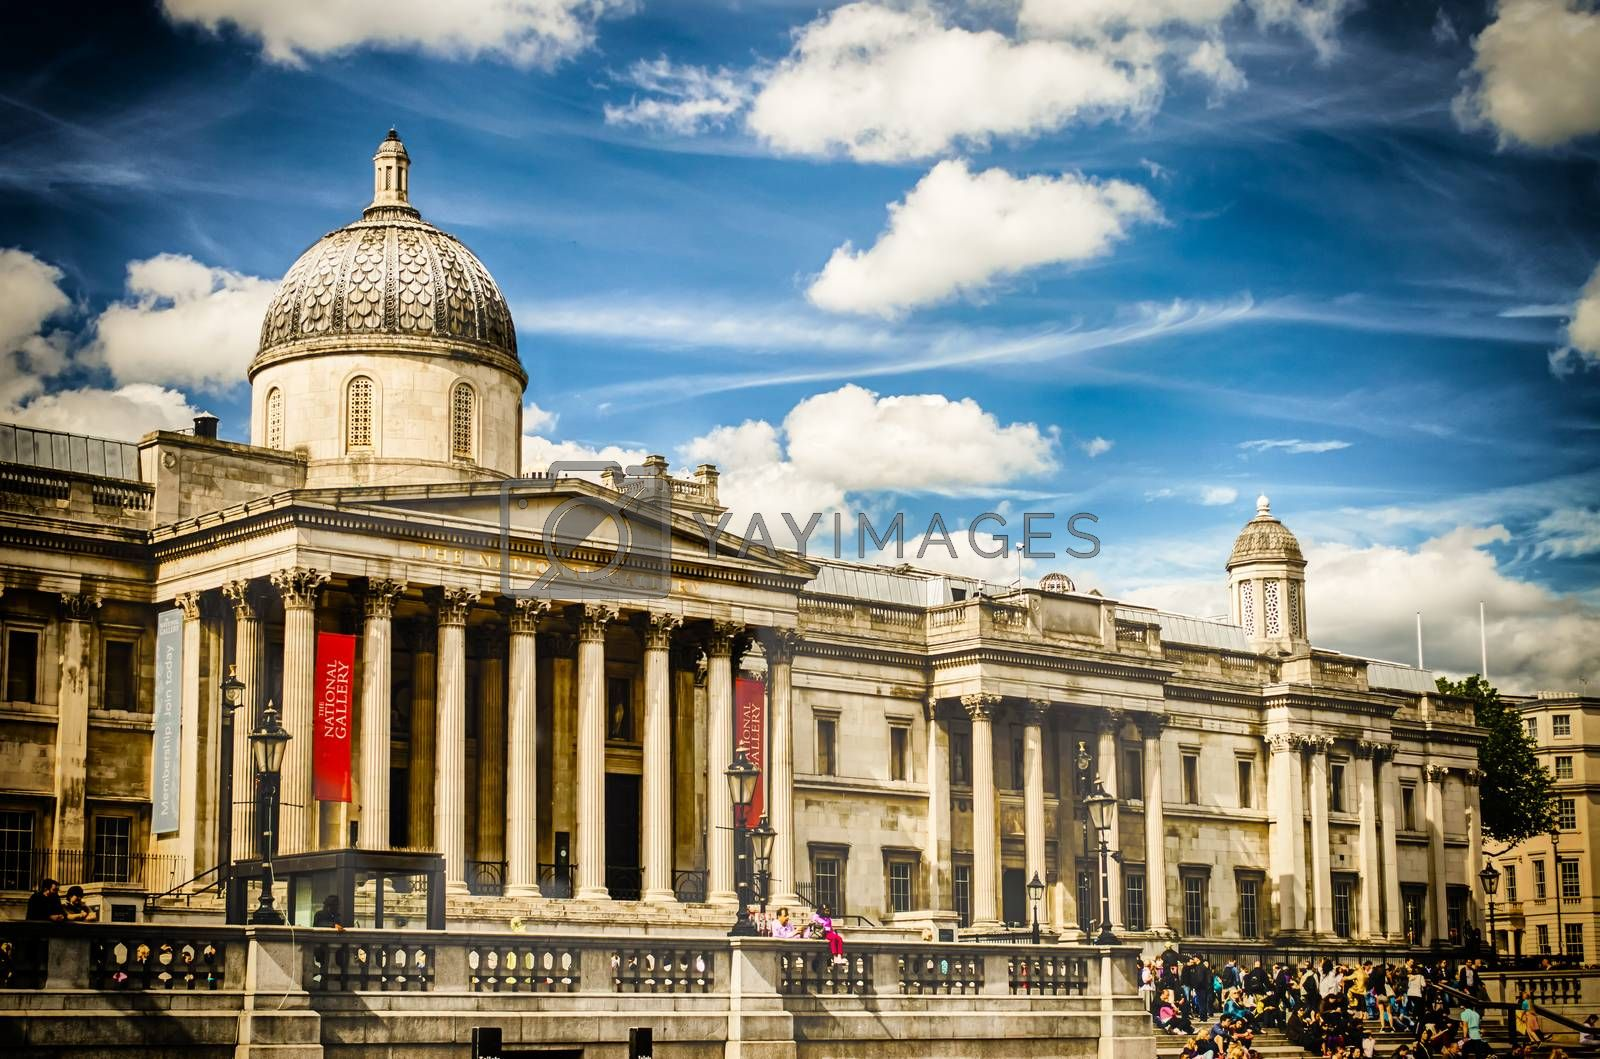 LONDON - MAY 28: Tourists in Trafalgar Square outside the National Gallery, May 28, 2015 in London. Founded in 1824, the National Gallery is one of the most visited museum in the world